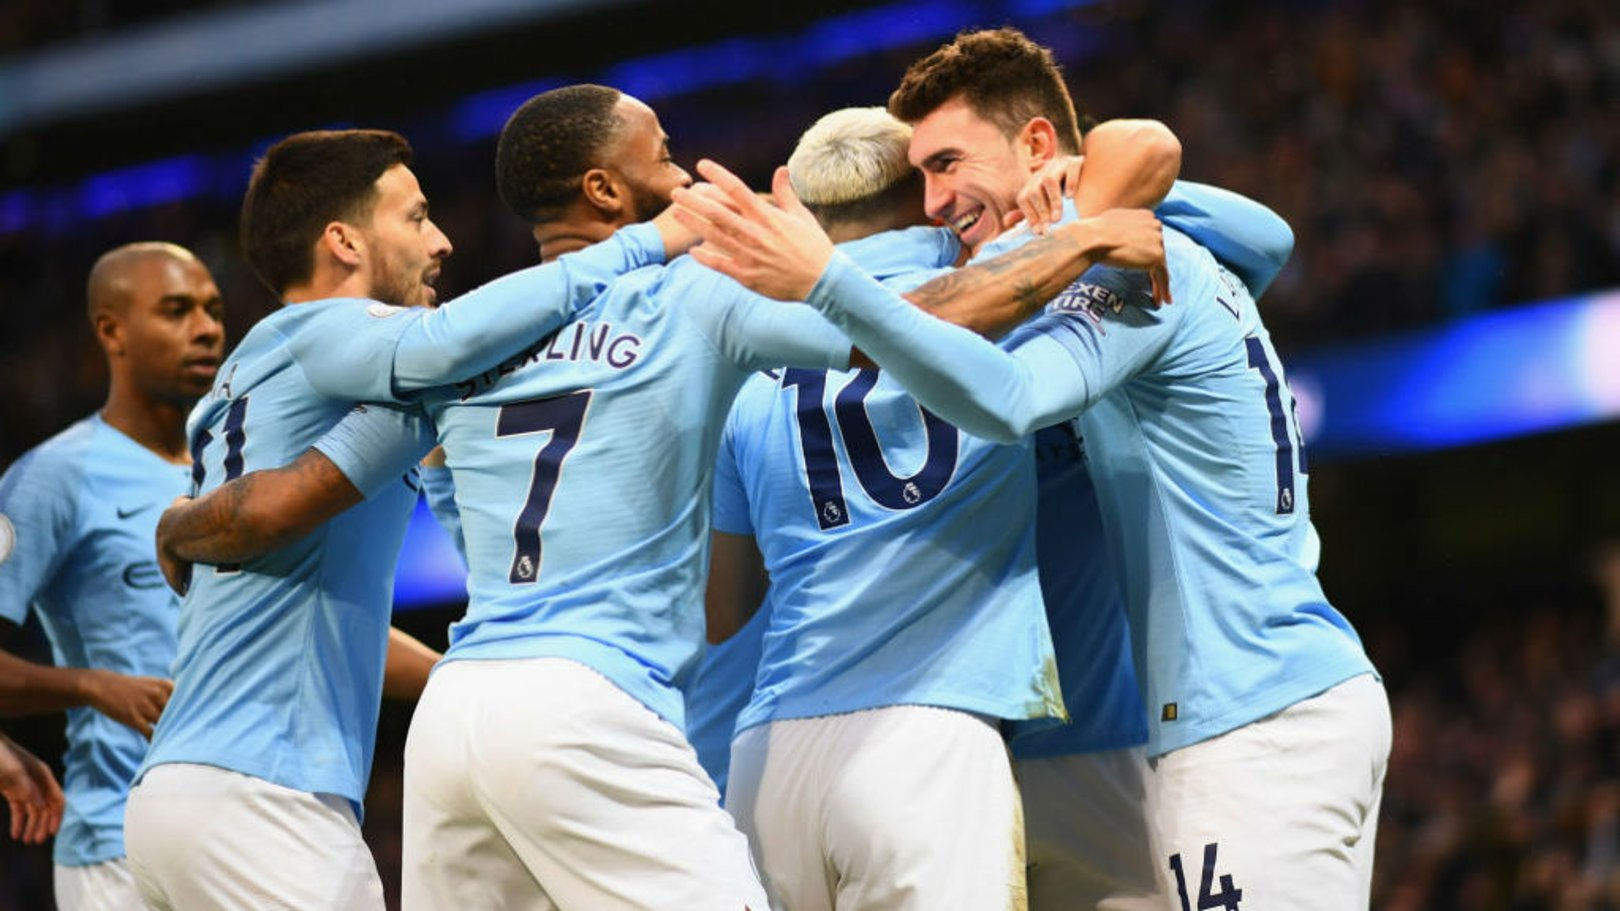 BLUES: The City players celebrate during the win over Arsenal